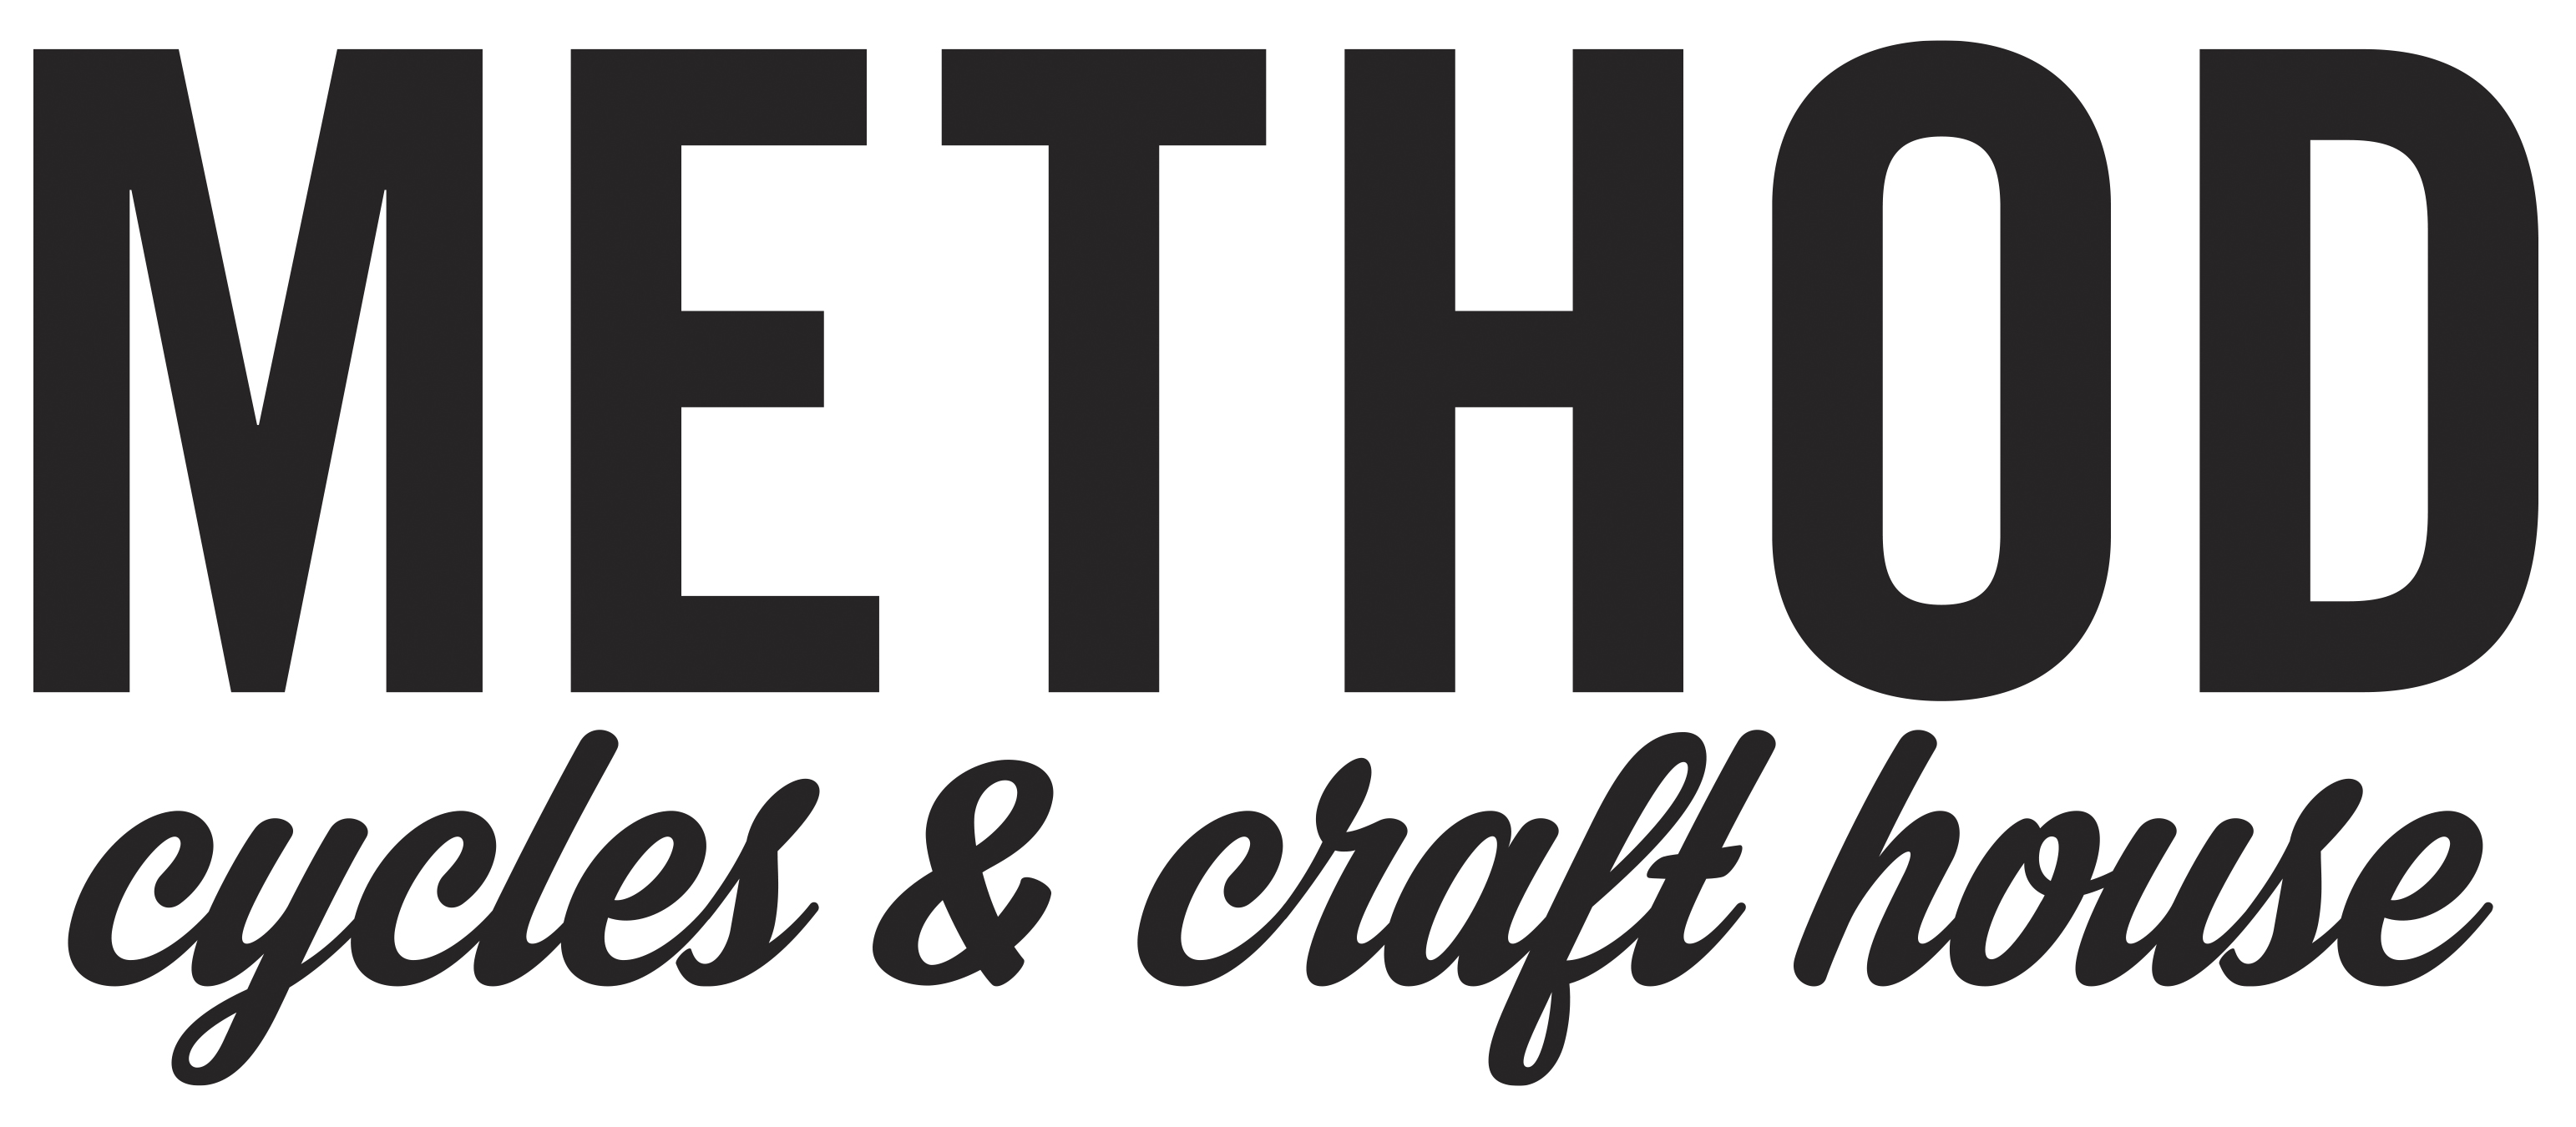 Method Cycles & Craft House